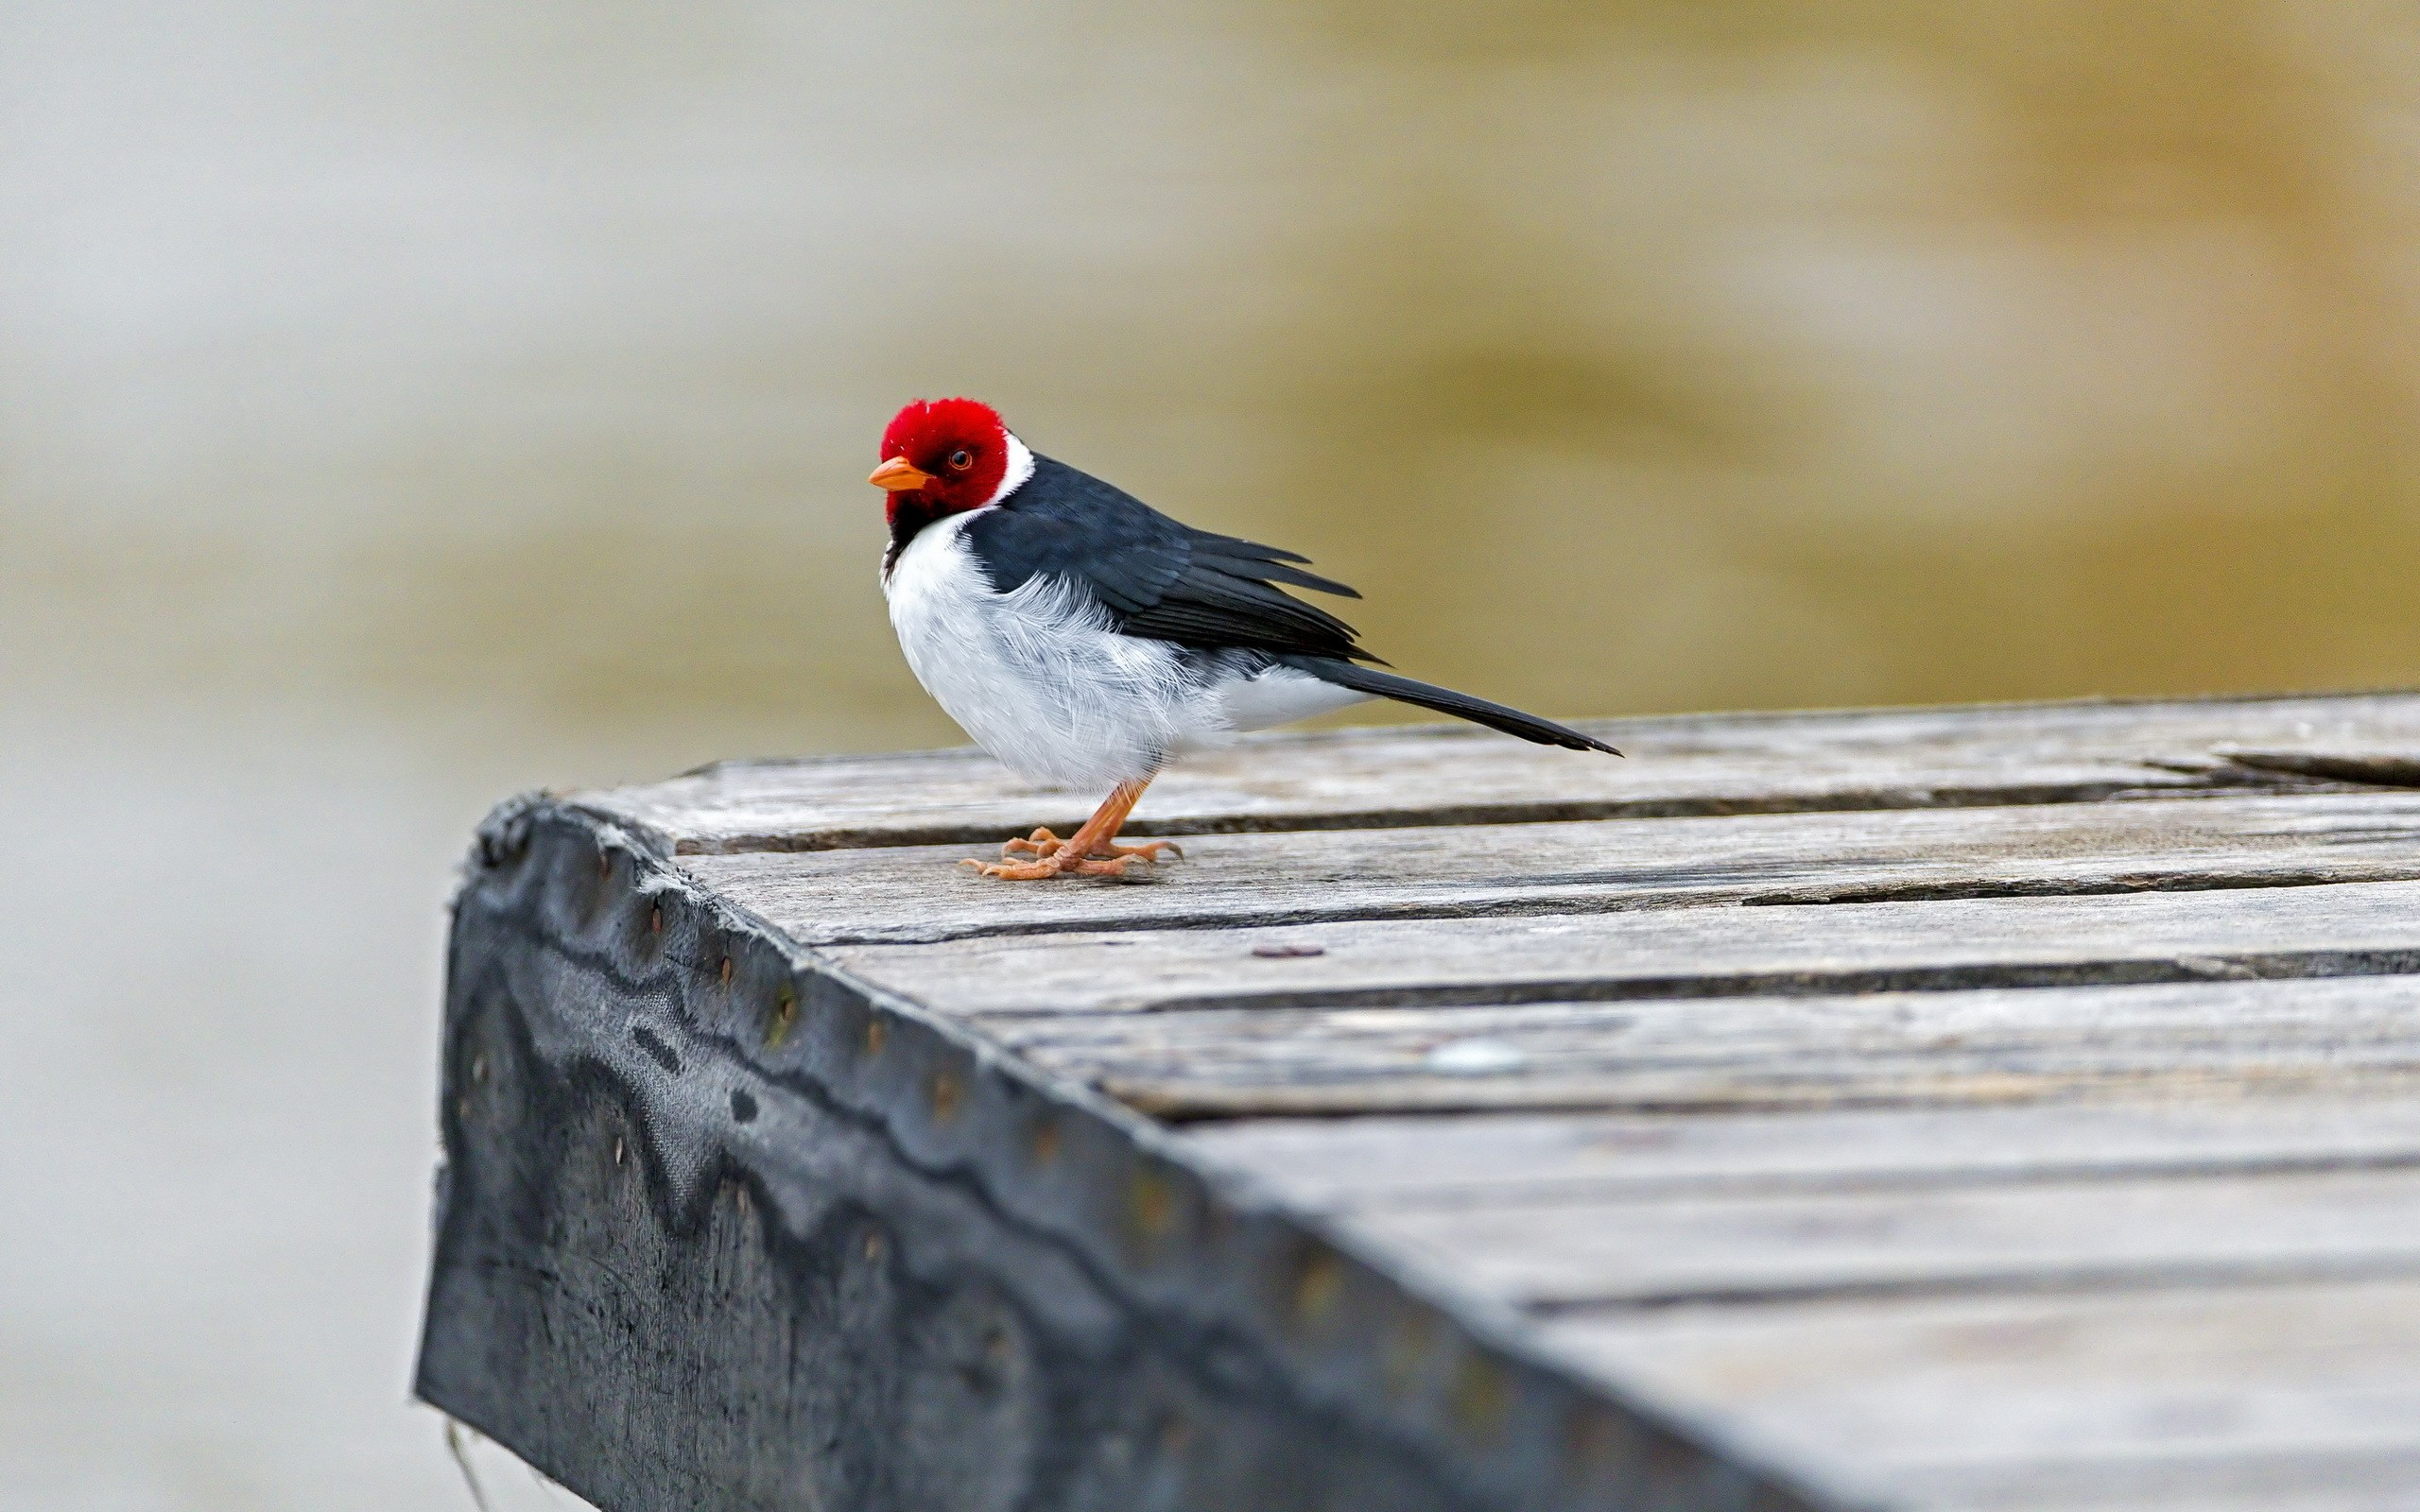 Red-capped Cardinal Bird